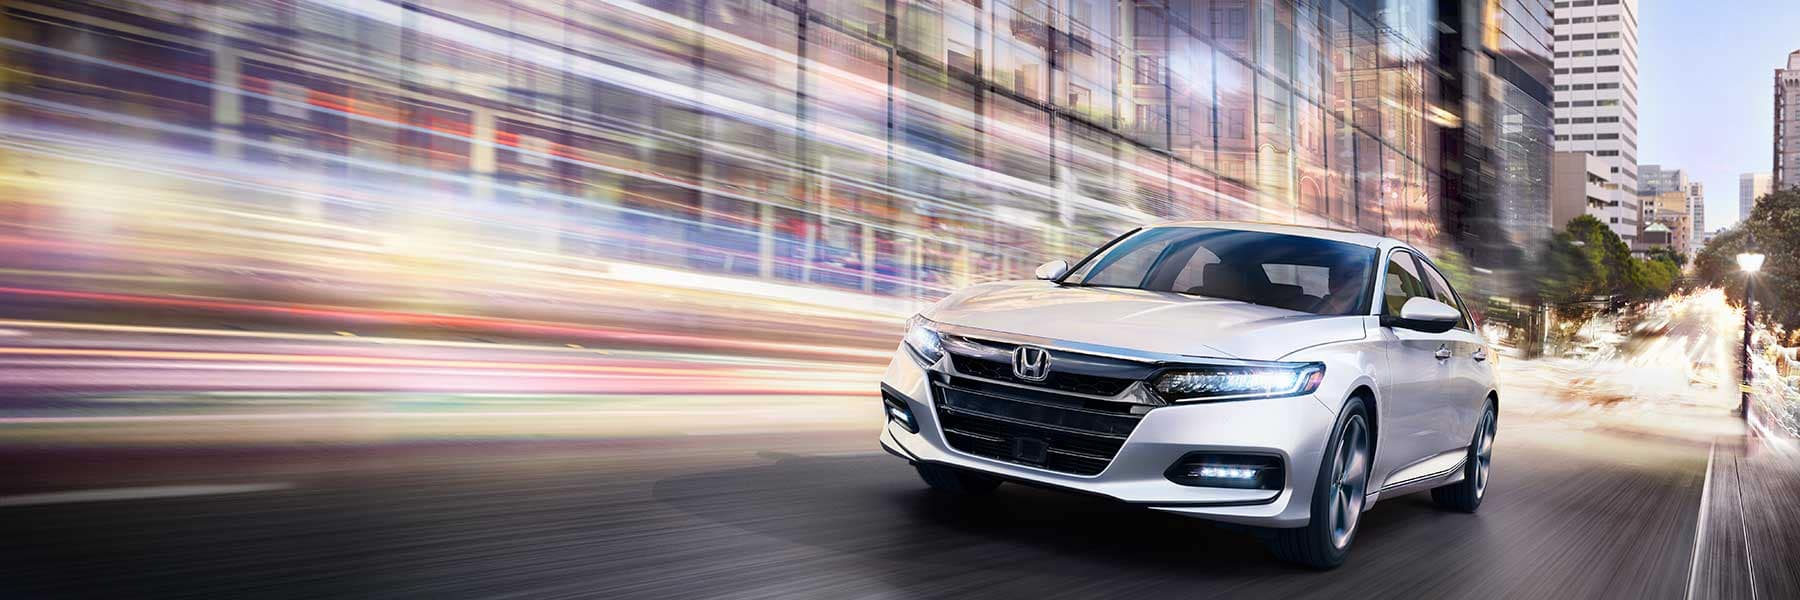 Honda Accord Dealership Long Island |Queens New York